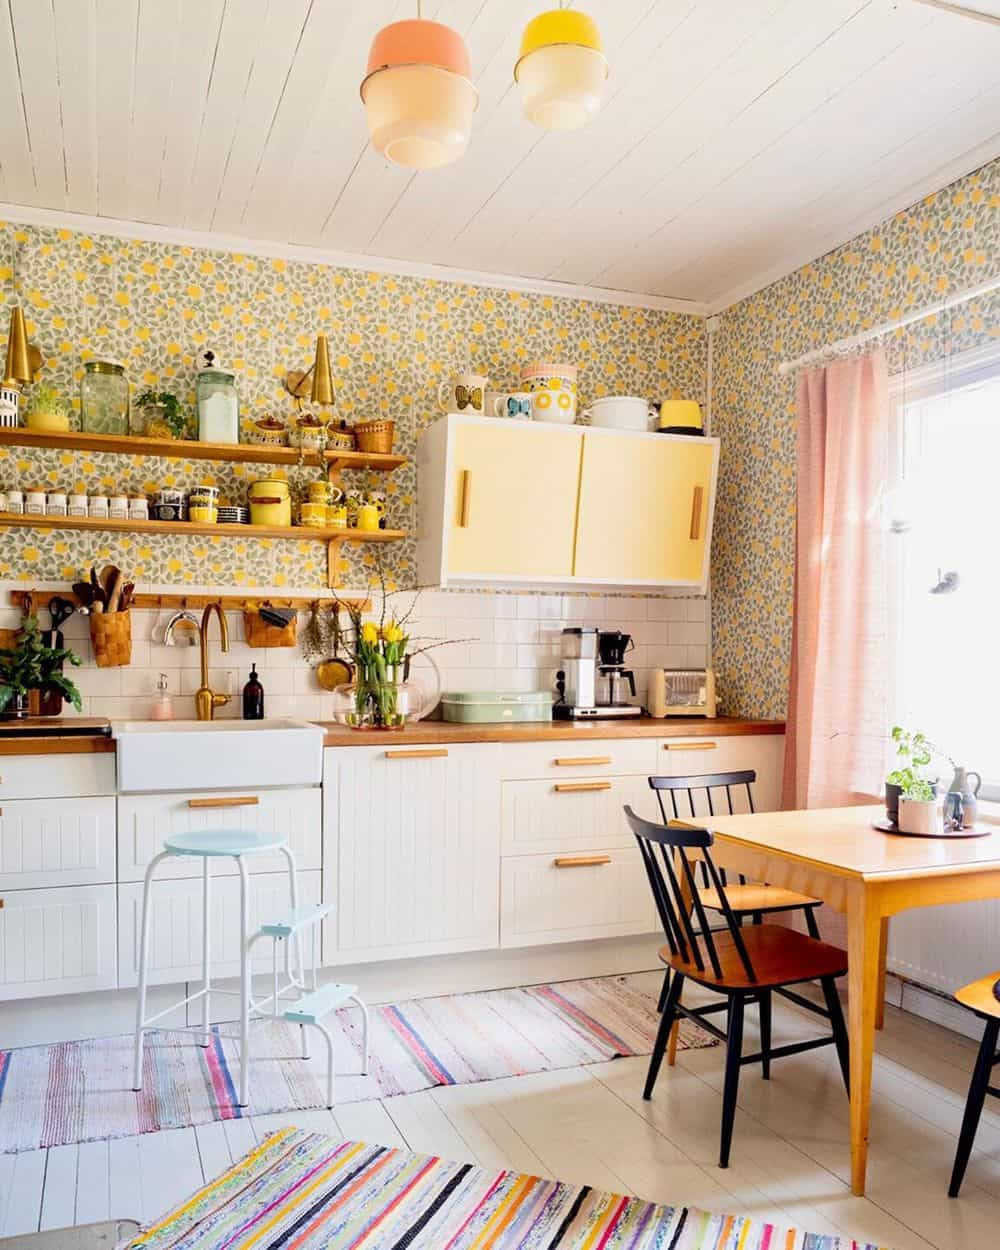 Timeless Kitchen Designs You Will Fall in Love With - Vintage Accents